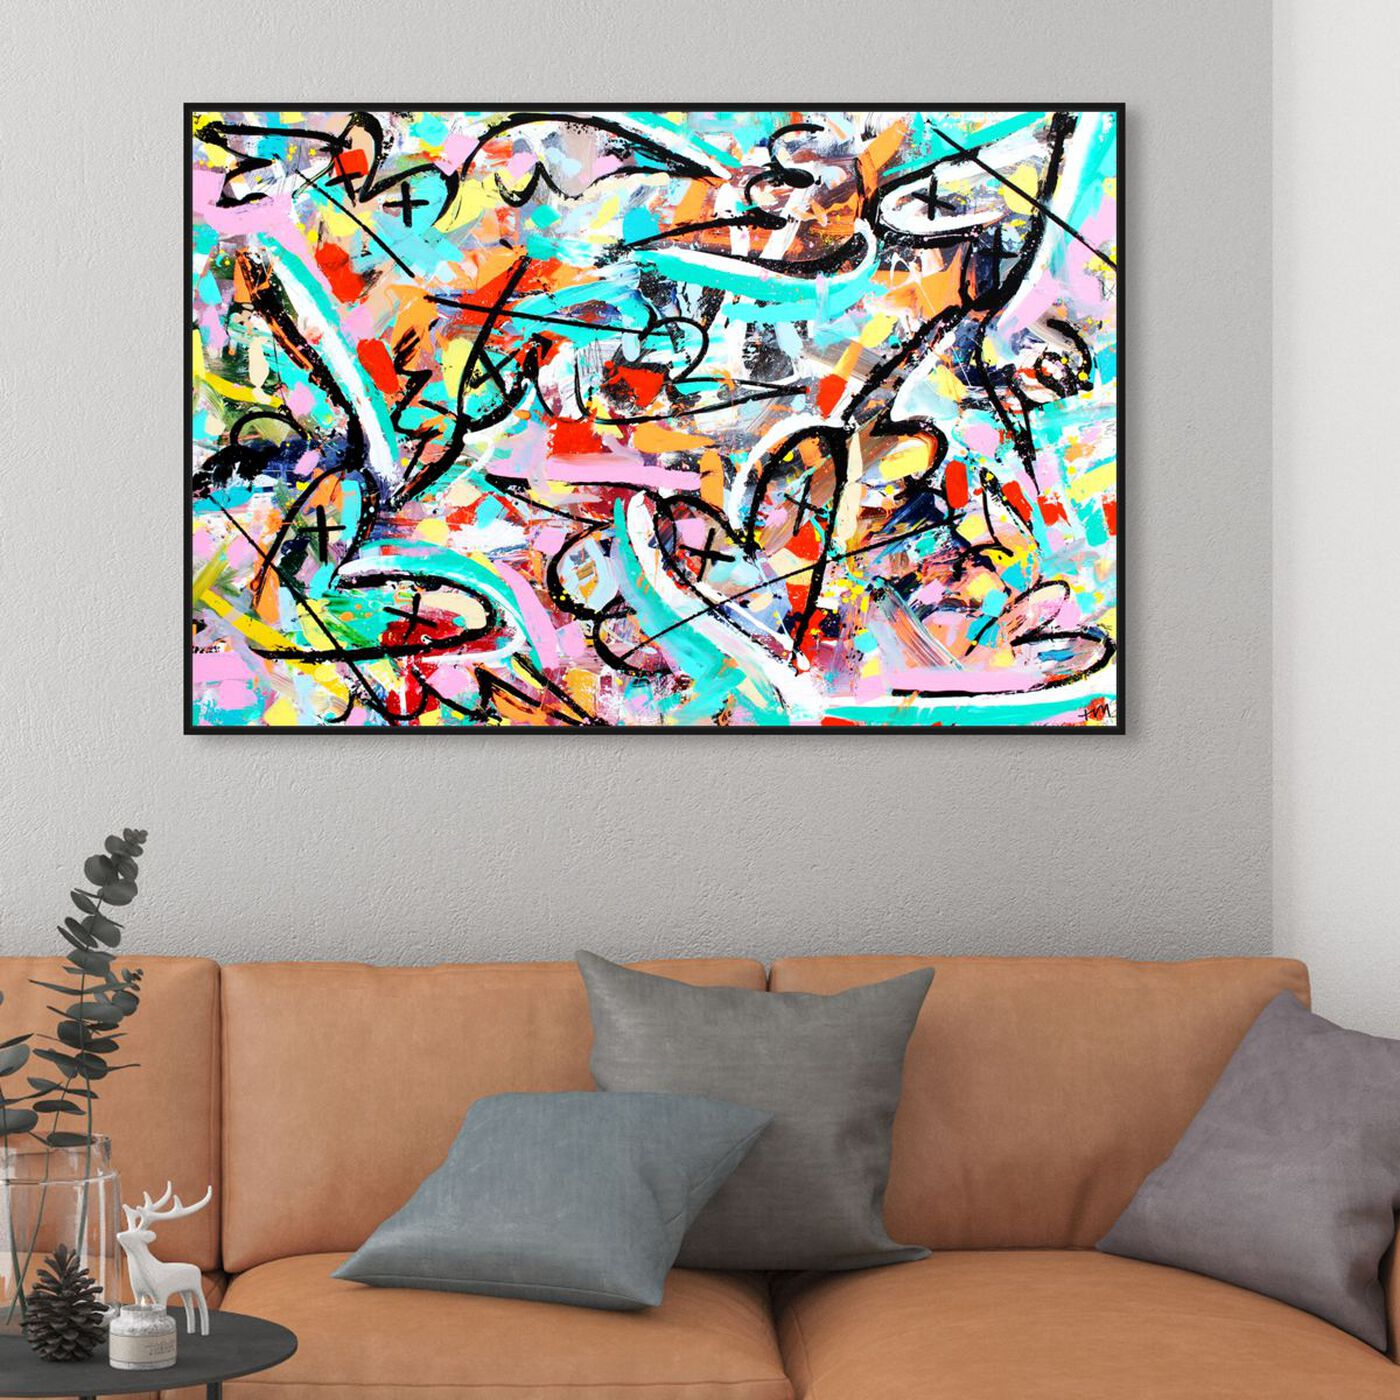 Hanging view of Timor Domini by Tiago Magro featuring abstract and textures art.